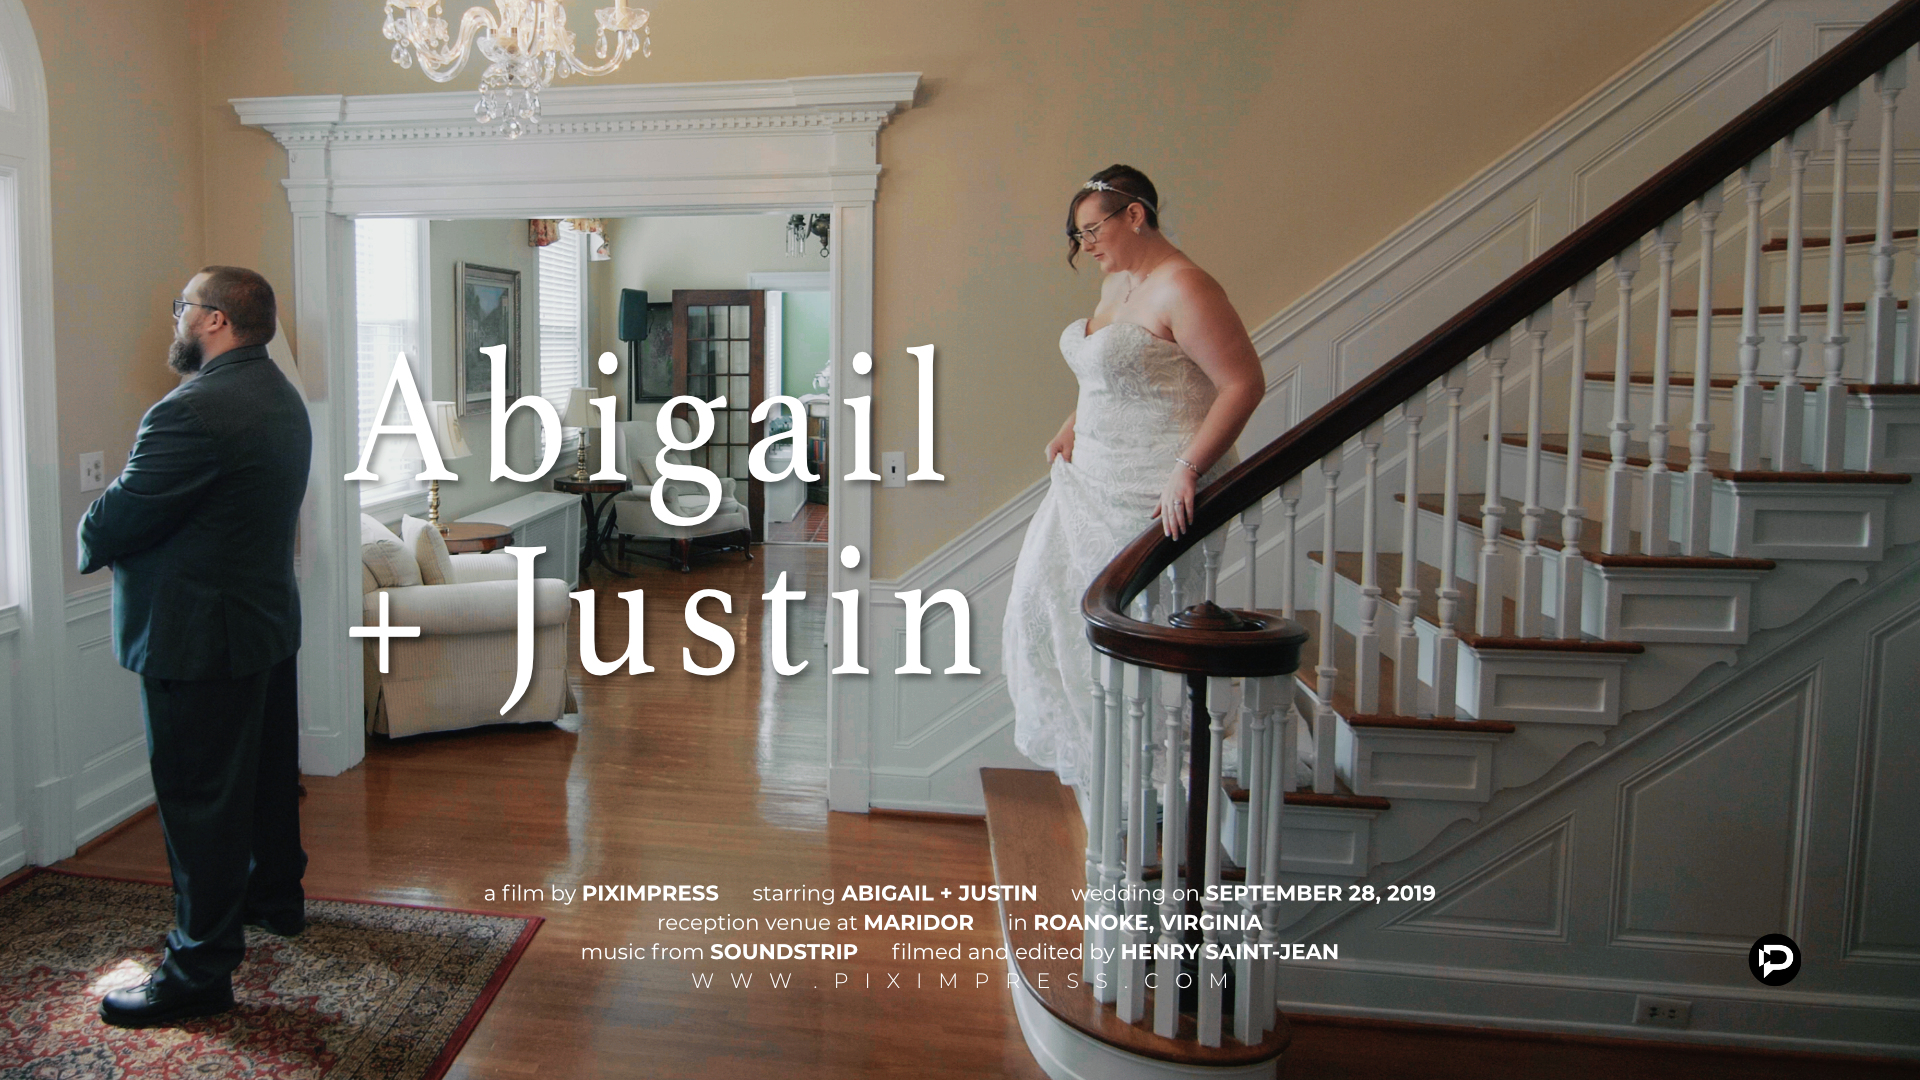 Abigail + Justin | Roanoke, Virginia | The Maridor